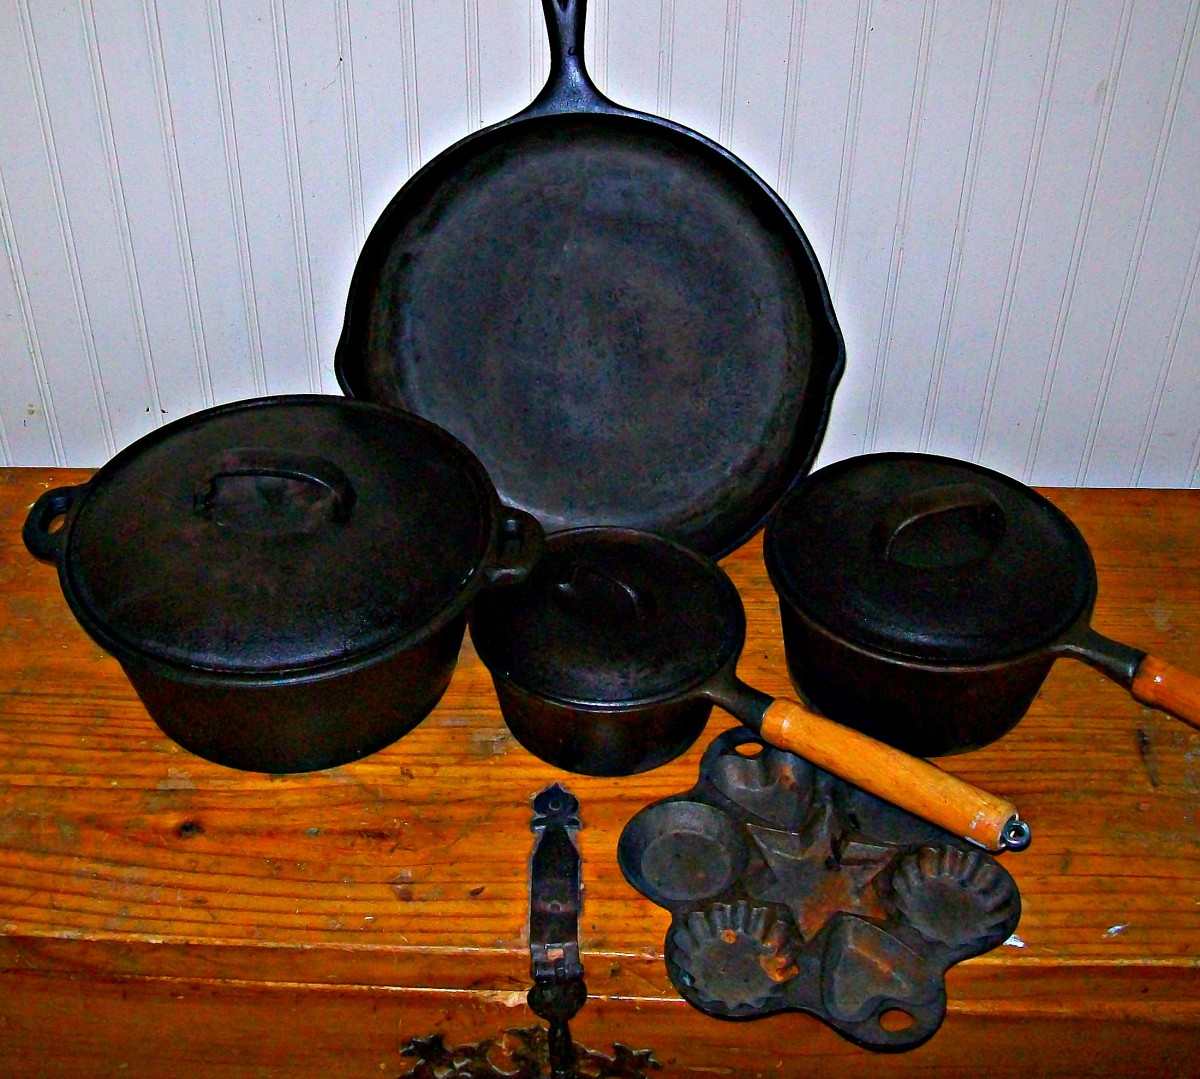 The Joy of Cast Iron Cookware: How to Season, Rehabilitate, and Care for Cast Iron Cookware